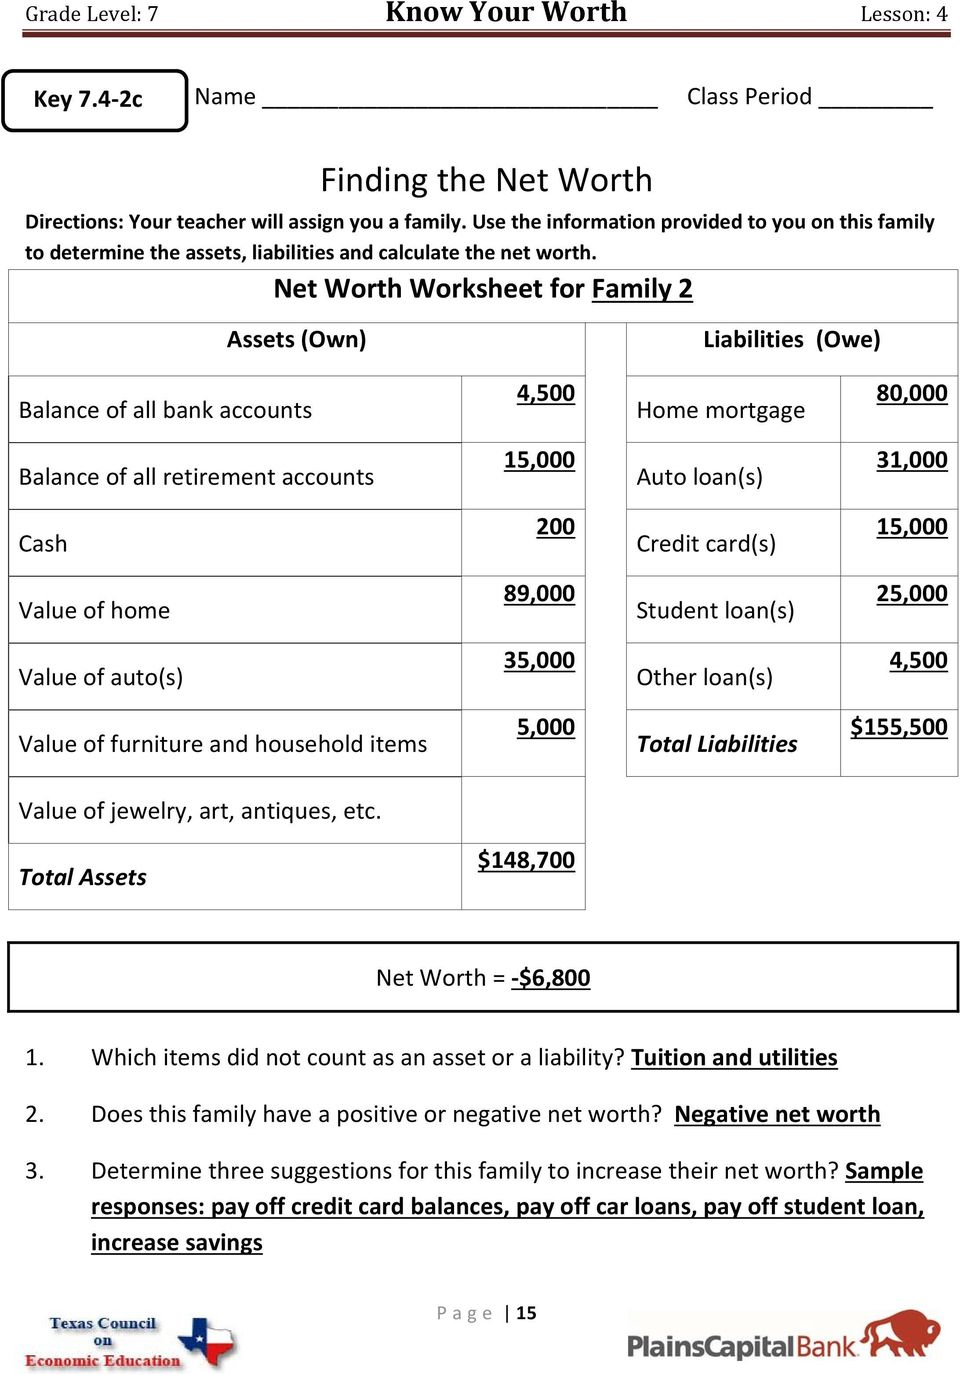 Net Worth Worksheet for Family2 Assets (Own) Liabilities (Owe) Balance of all bank accounts 4,500 Home mortgage 80,000 Balance of all retirement accounts 15,000 Auto loan(s) 31,000 Cash 200 Credit